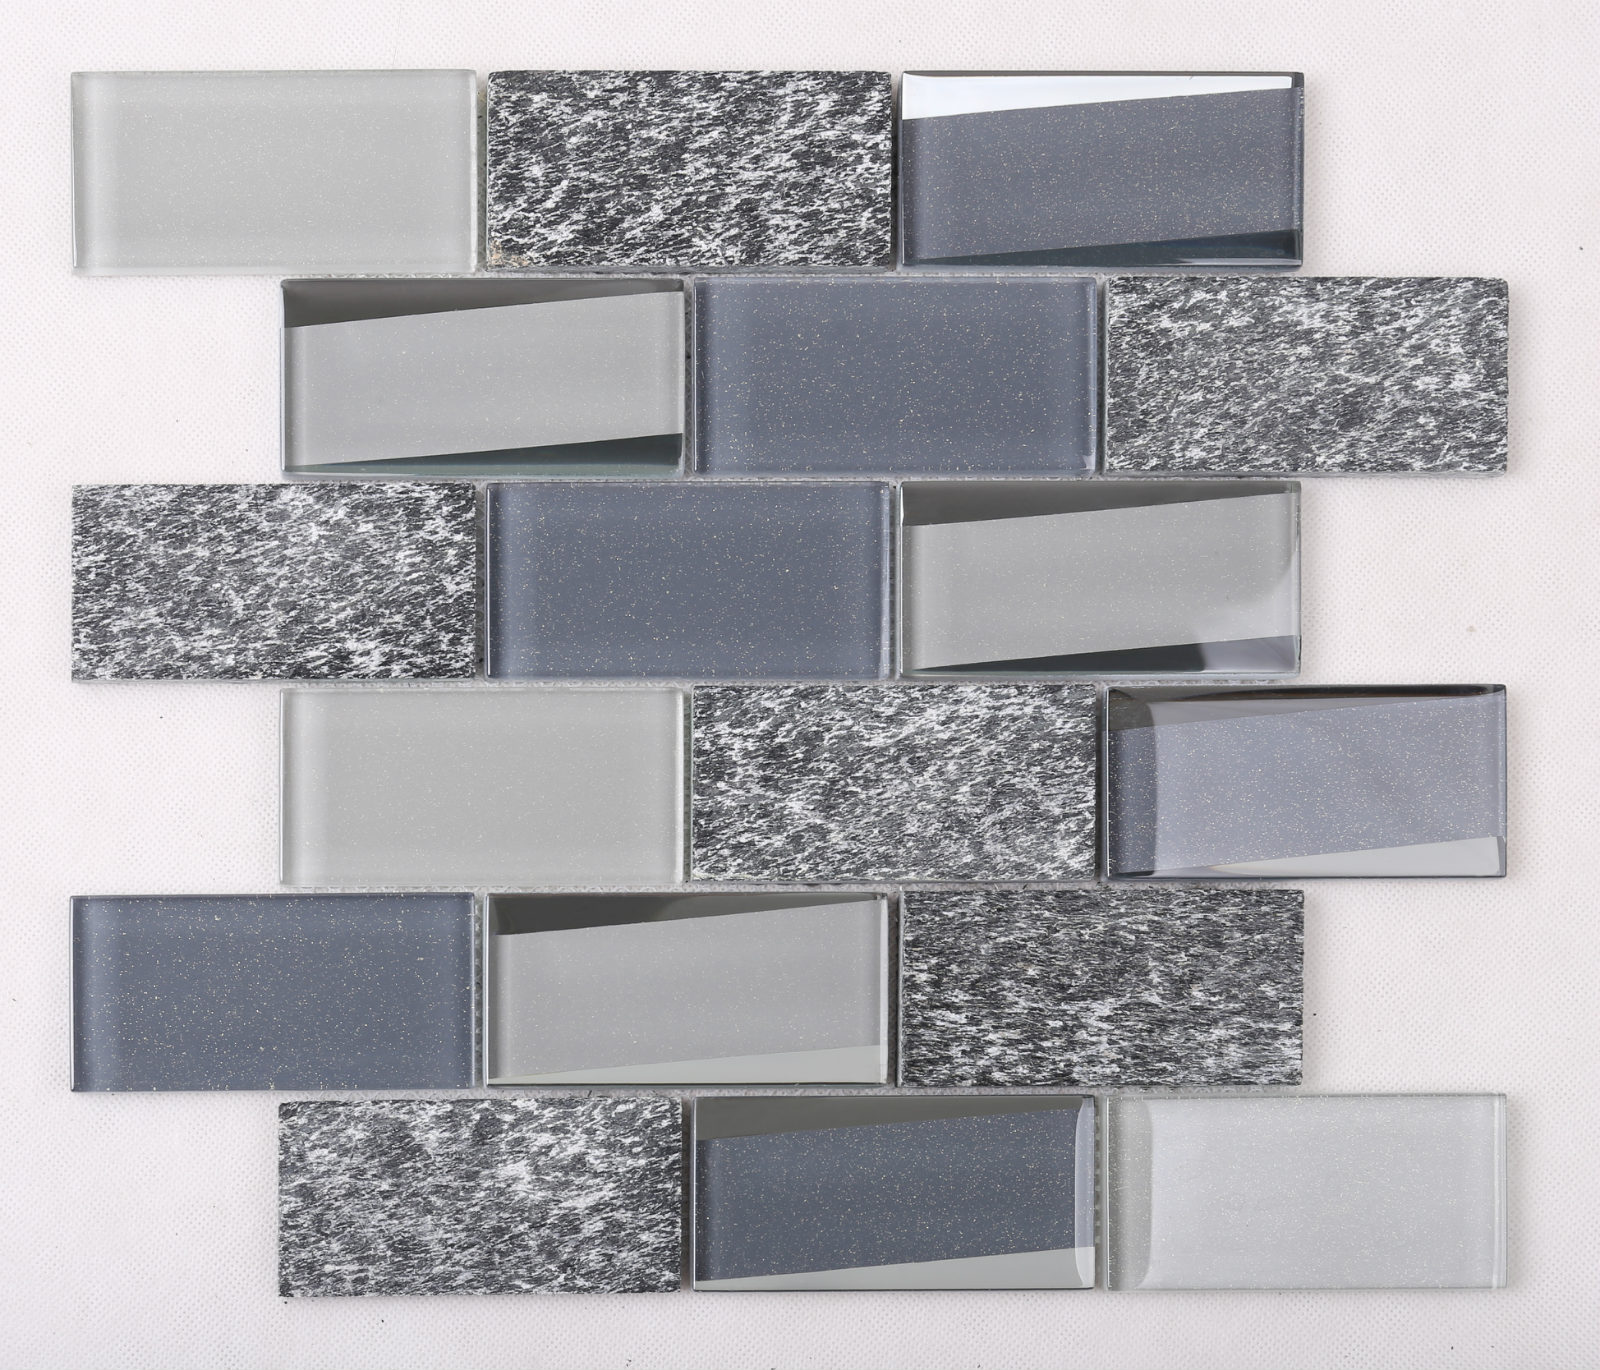 Heng Xing-Oem Oceanside Glass Tile Manufacturer, Herringbone Backsplash | Heng Xing